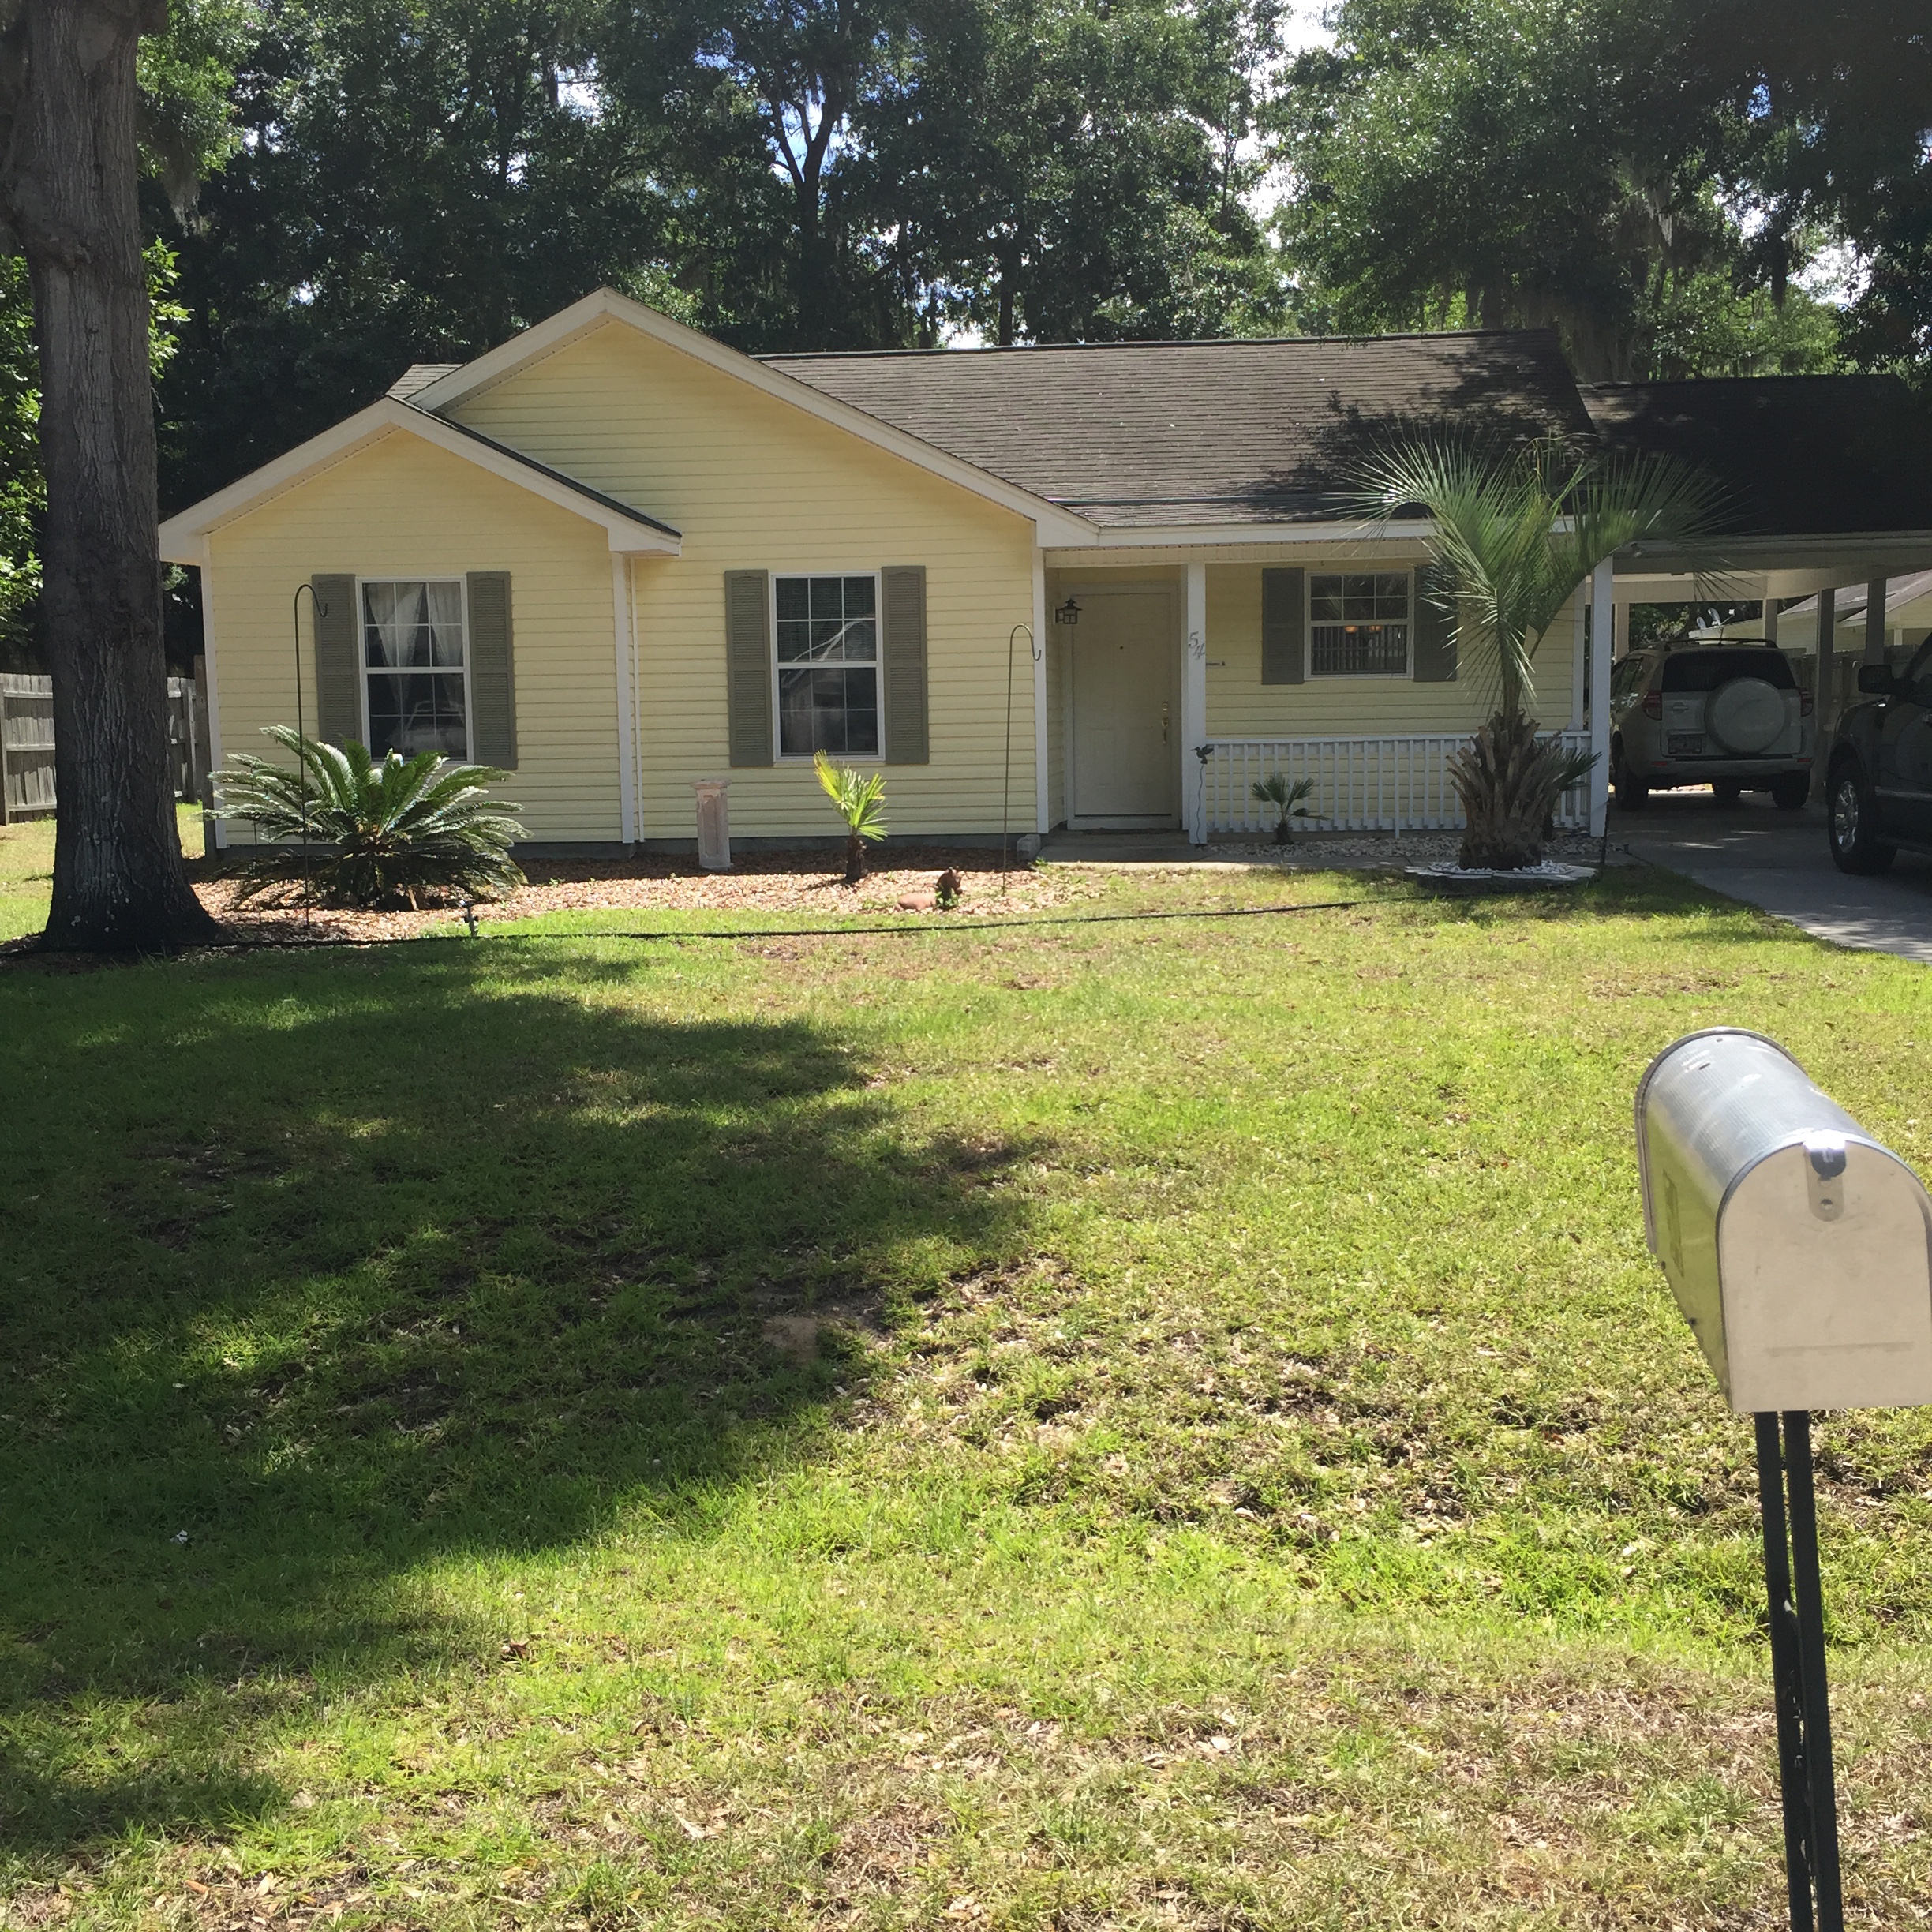 Rentals  54 Ardmore Avenue is located in the popular Telfair Rosewalk  neighborhood on Ladys Island  SC  This three bedroom  two bath home is  situated on a. 54 Ardmore Avenue For Rent in Telfair Neighborhood in Beaufort SC